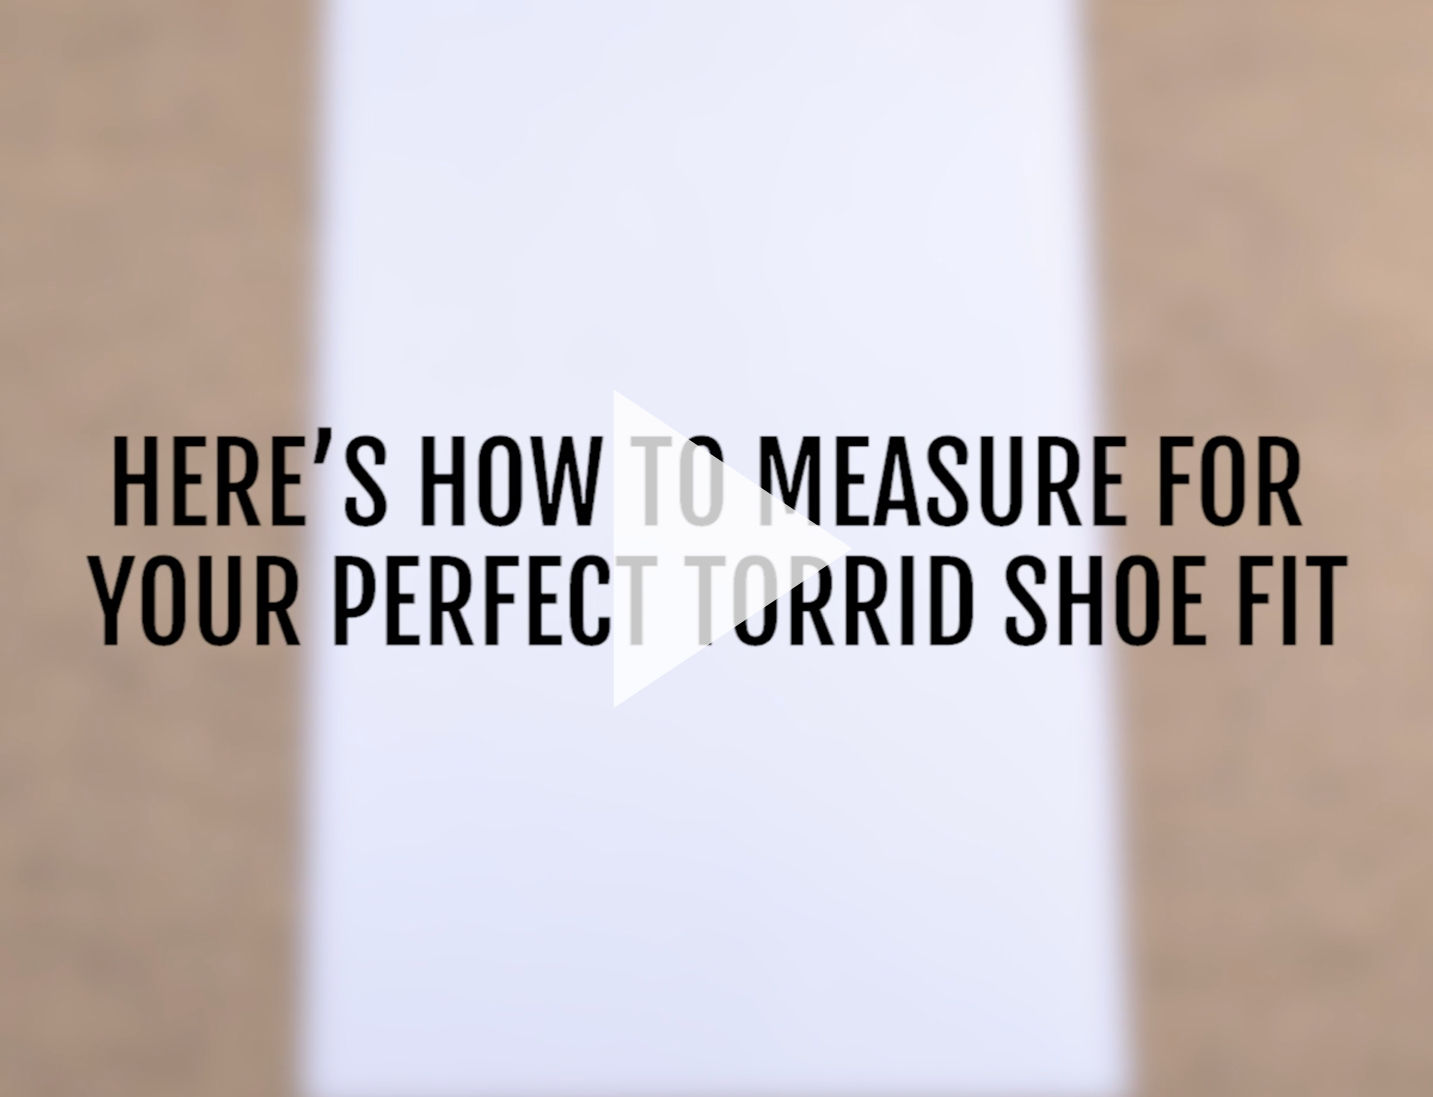 How to Measure your foot video